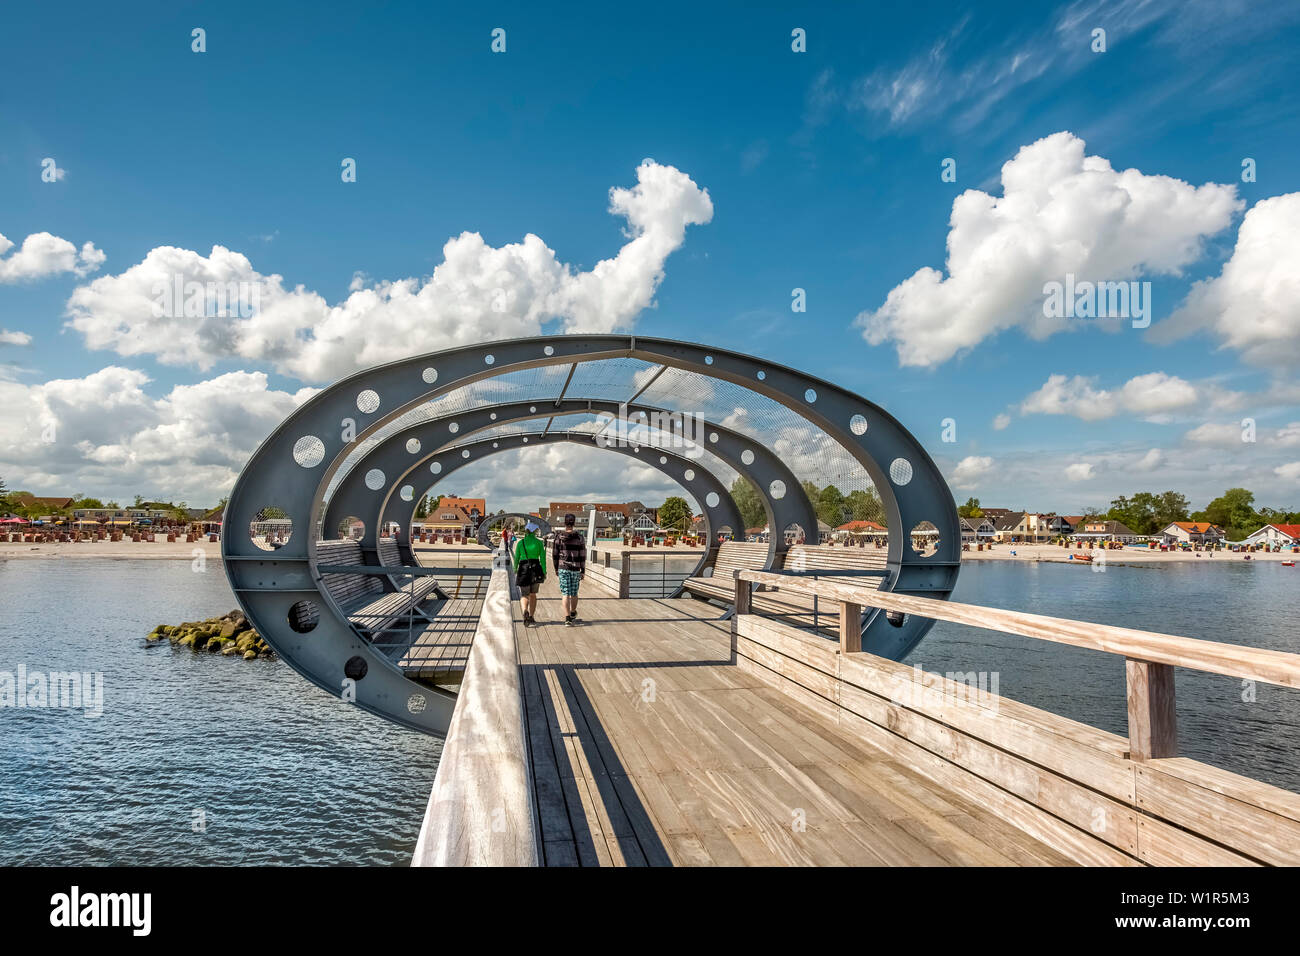 Pier, Kellenhusen, Baltic coast, Schleswig-Holstein, Germany Stock Photo